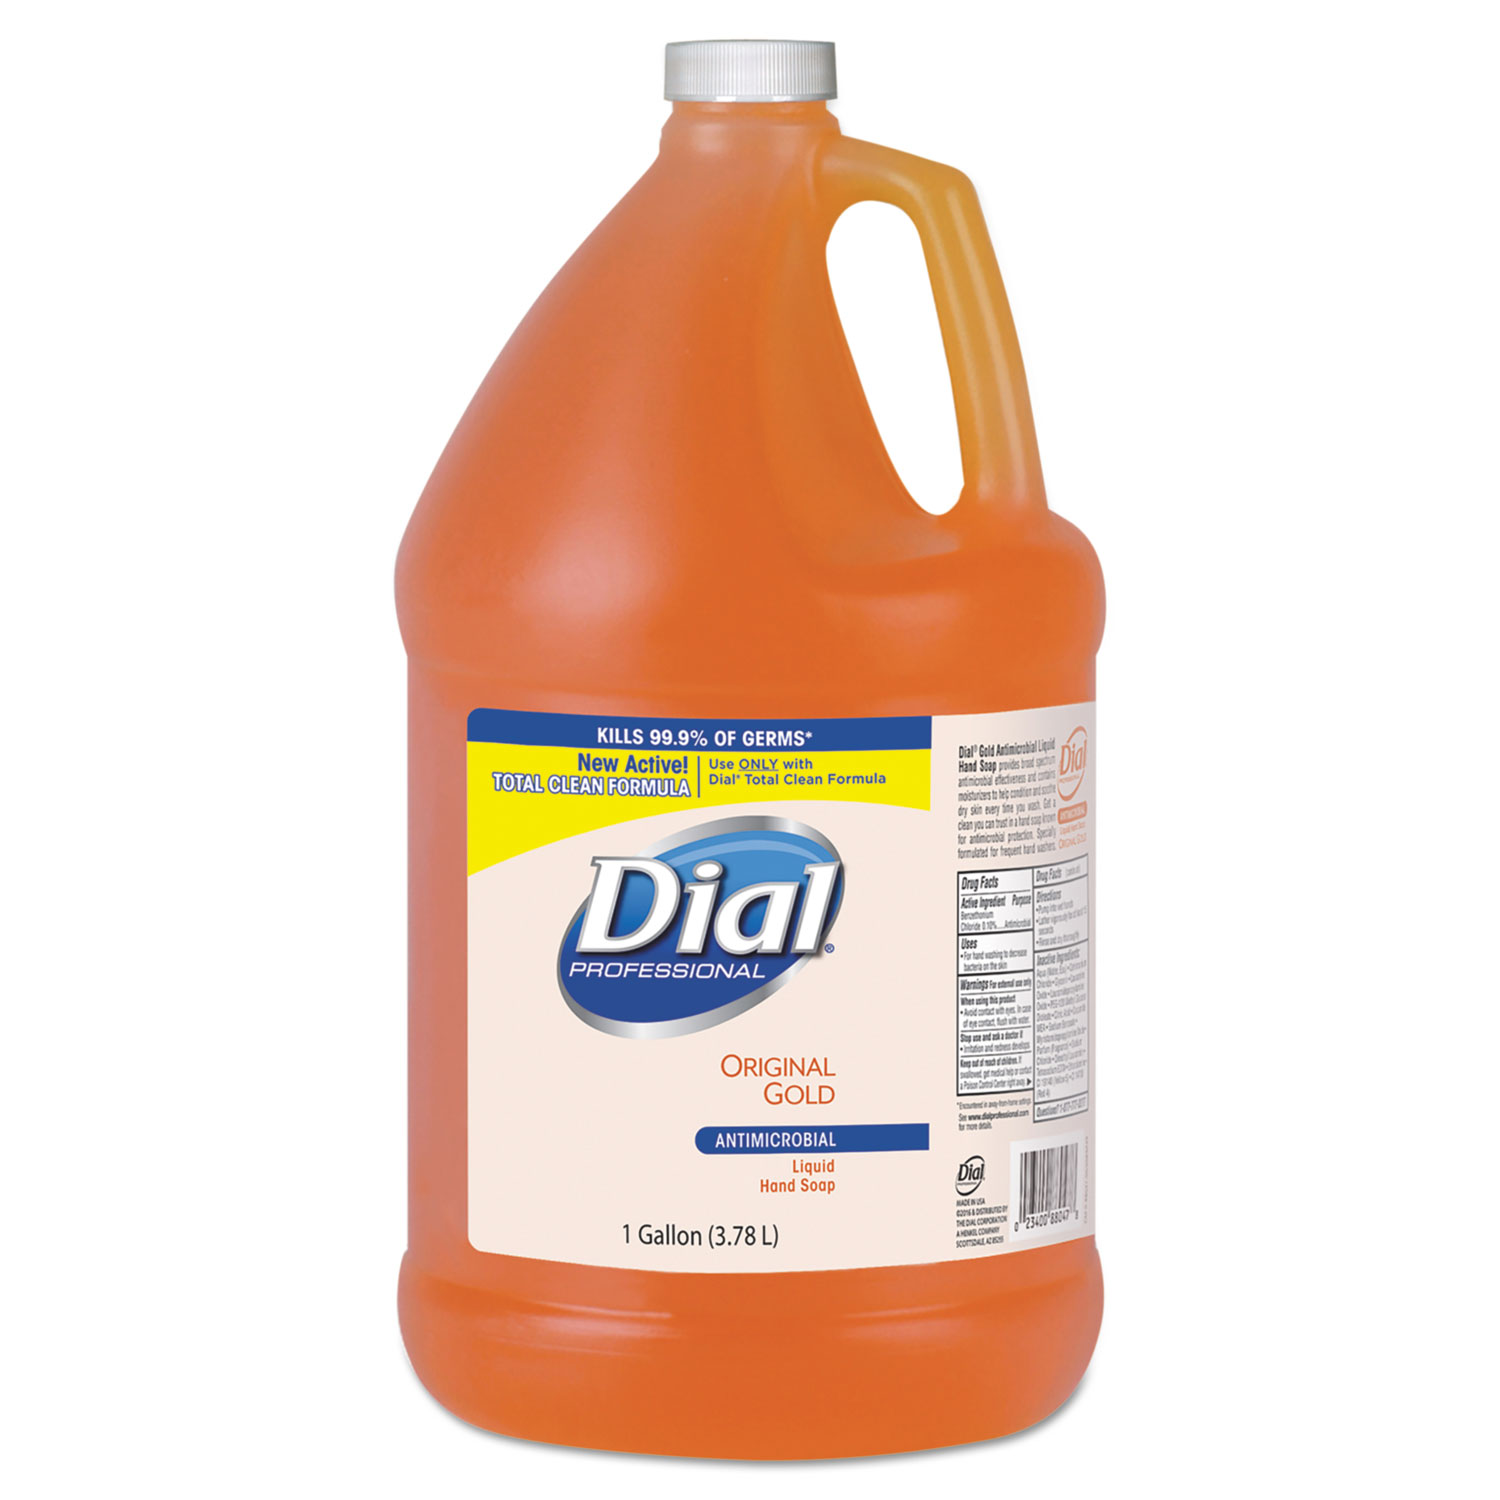 Dial Gold Antimicrobial Liquid Hand Soap - Floral Fragrance, 1 Gallon, 4/Case